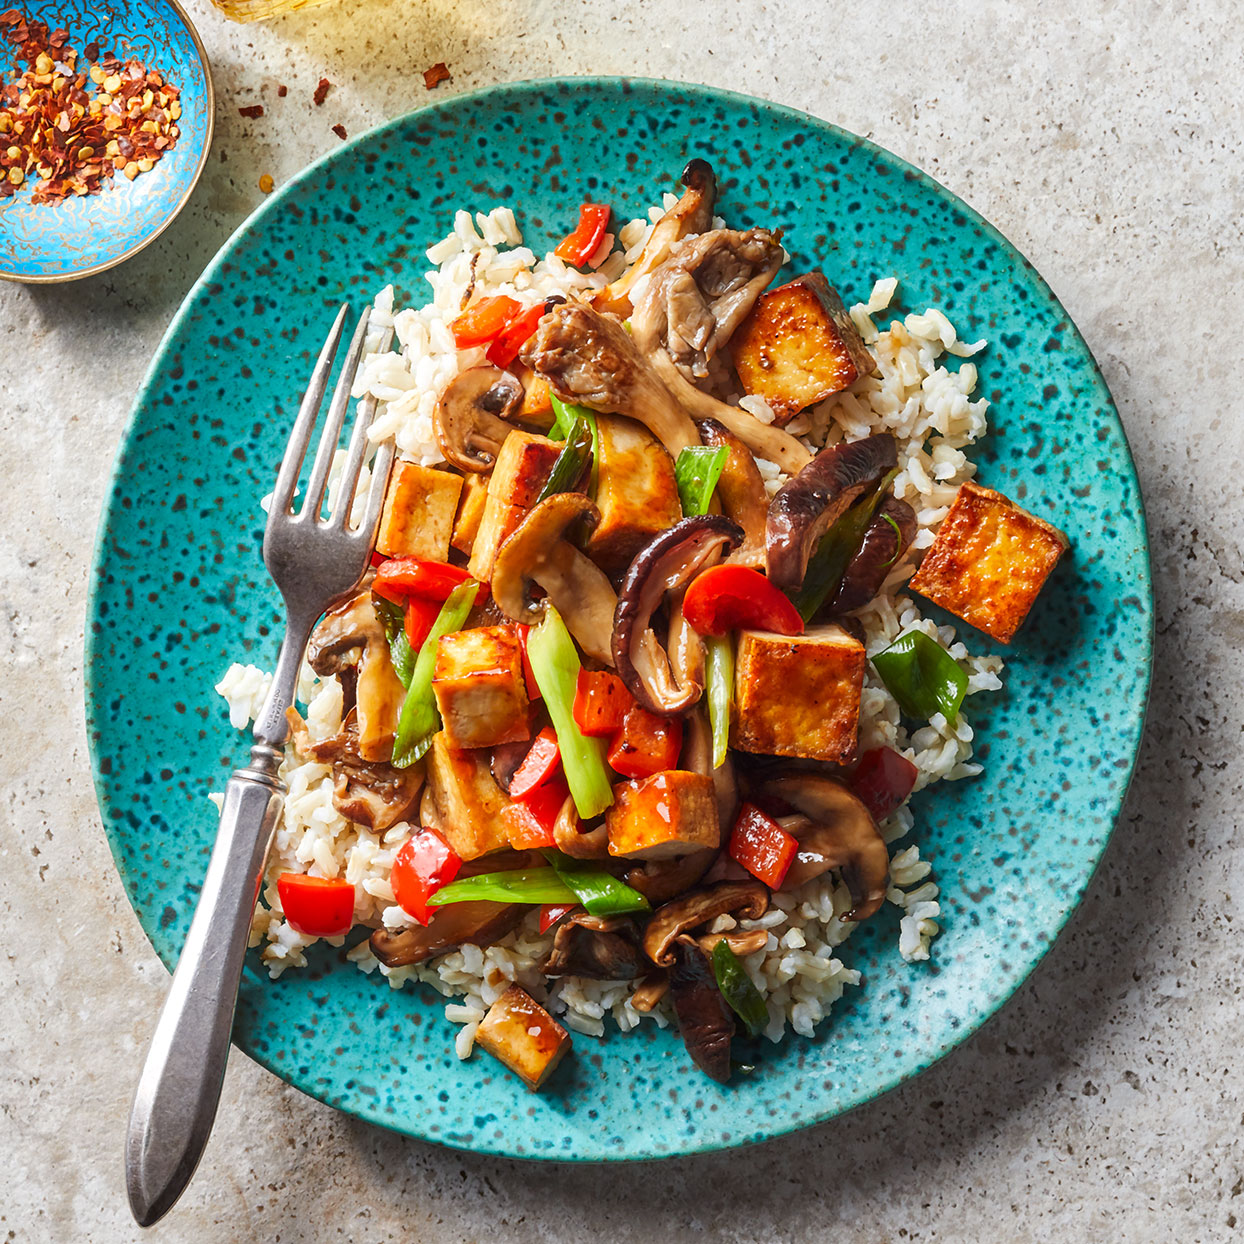 https://www.eatingwell.com/gallery/7669213/easy-30-minute-stir-fry-recipes/mushroom-tofu-stir-fry/